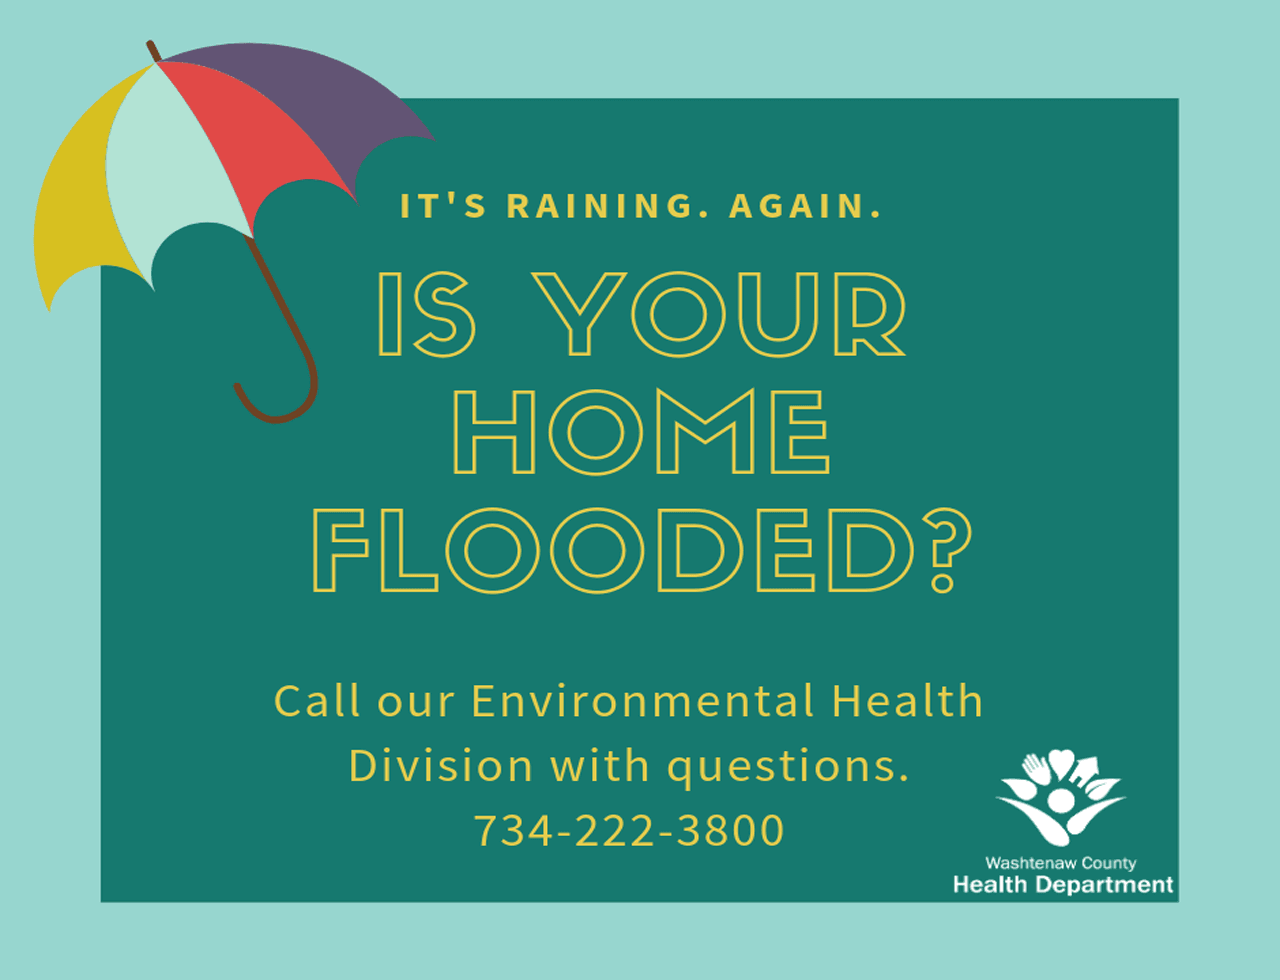 Call Environmental Health at 734-222-3800 with flooding questions.